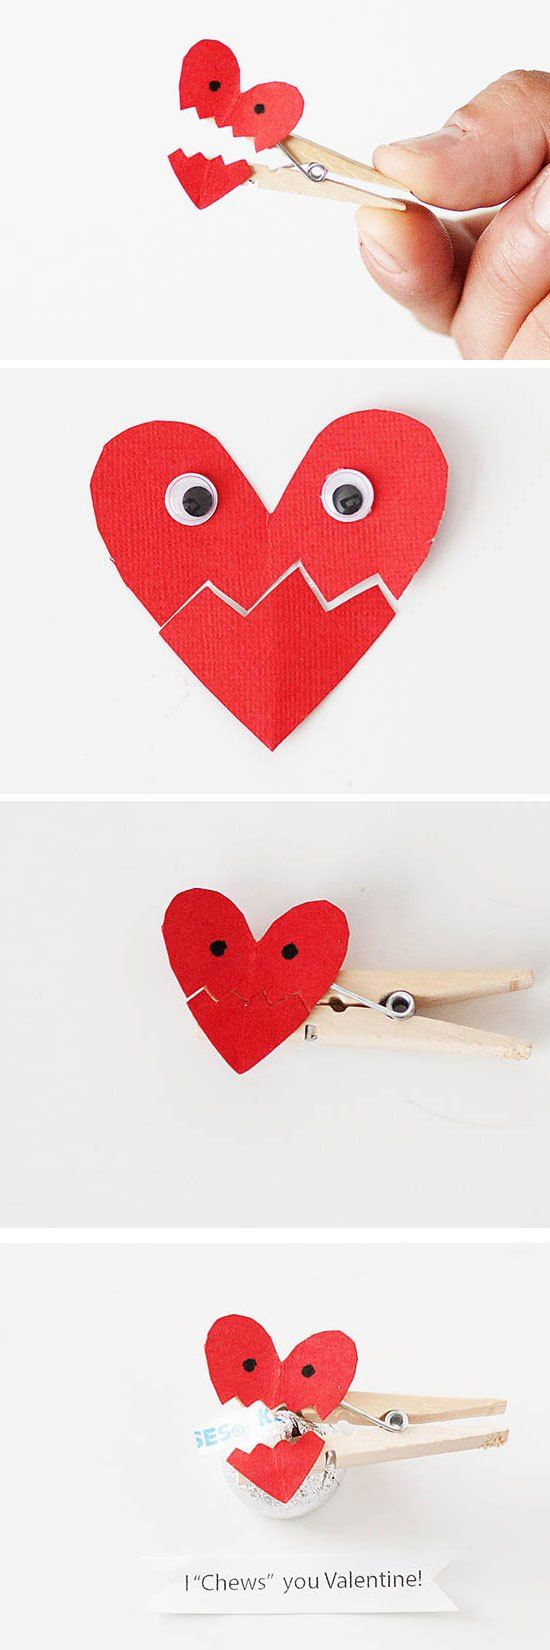 wakemytrend.com 23 Fun Valentines Day Crafts for Kids to Make